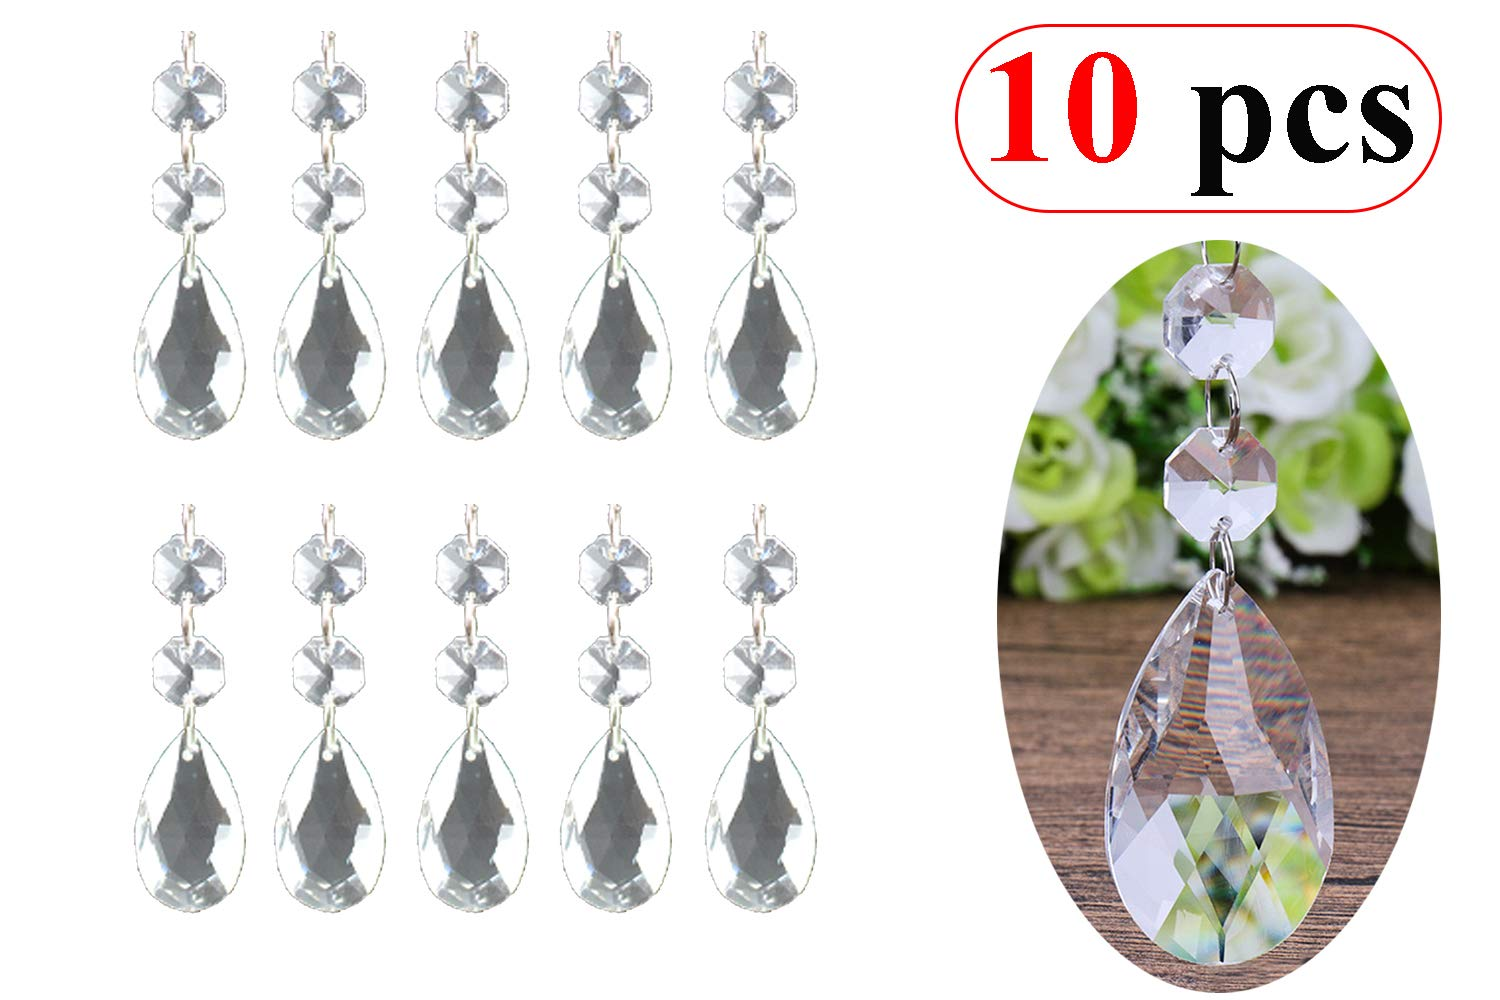 10Pcs Crystal Beads Pendants,Clear Teardrop Chandelier Crystal Pendants Glass Pendants Beads for Wedding Party Tree Garlands Decoration Gems Bead Strands Christmas Wedding Part Tree Garlands